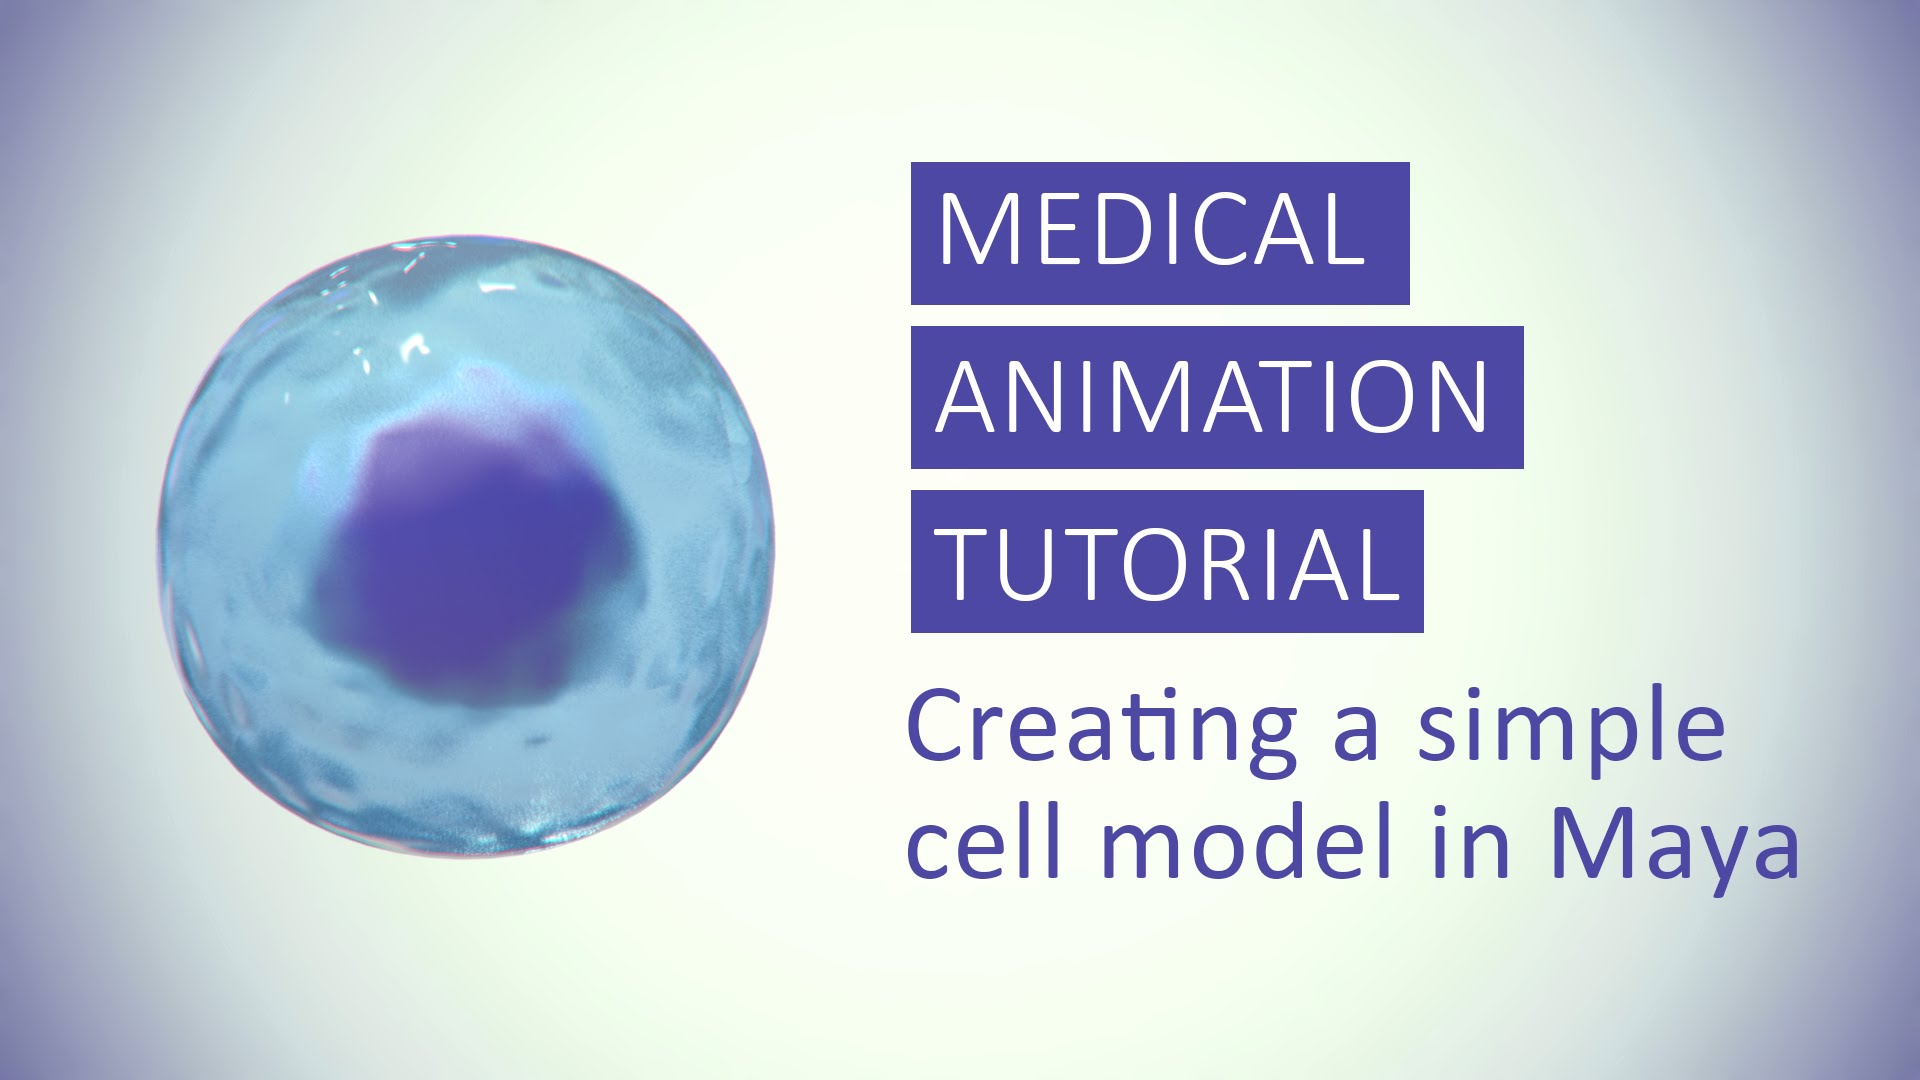 Medical Animation Tutorial - Creating a simple cell model in Maya